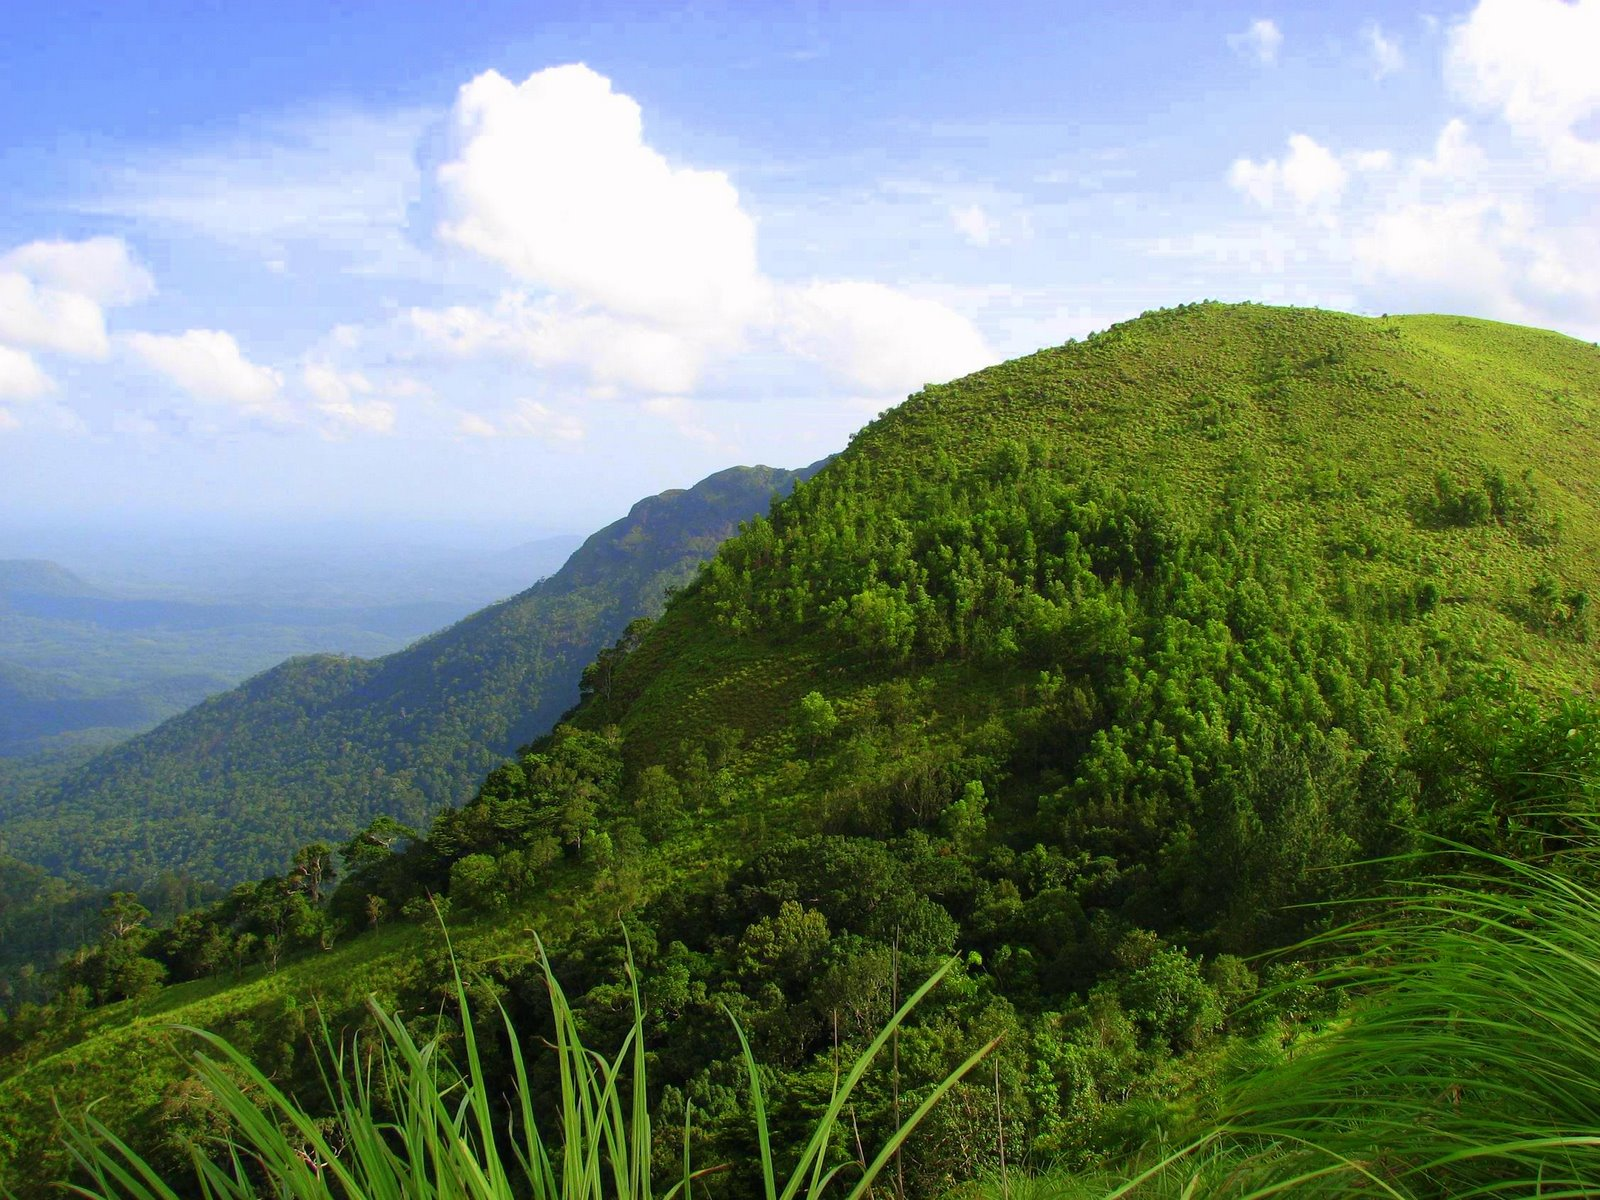 A view of Ponmudi Hills in Thiruvananthapuram district, Kerala.